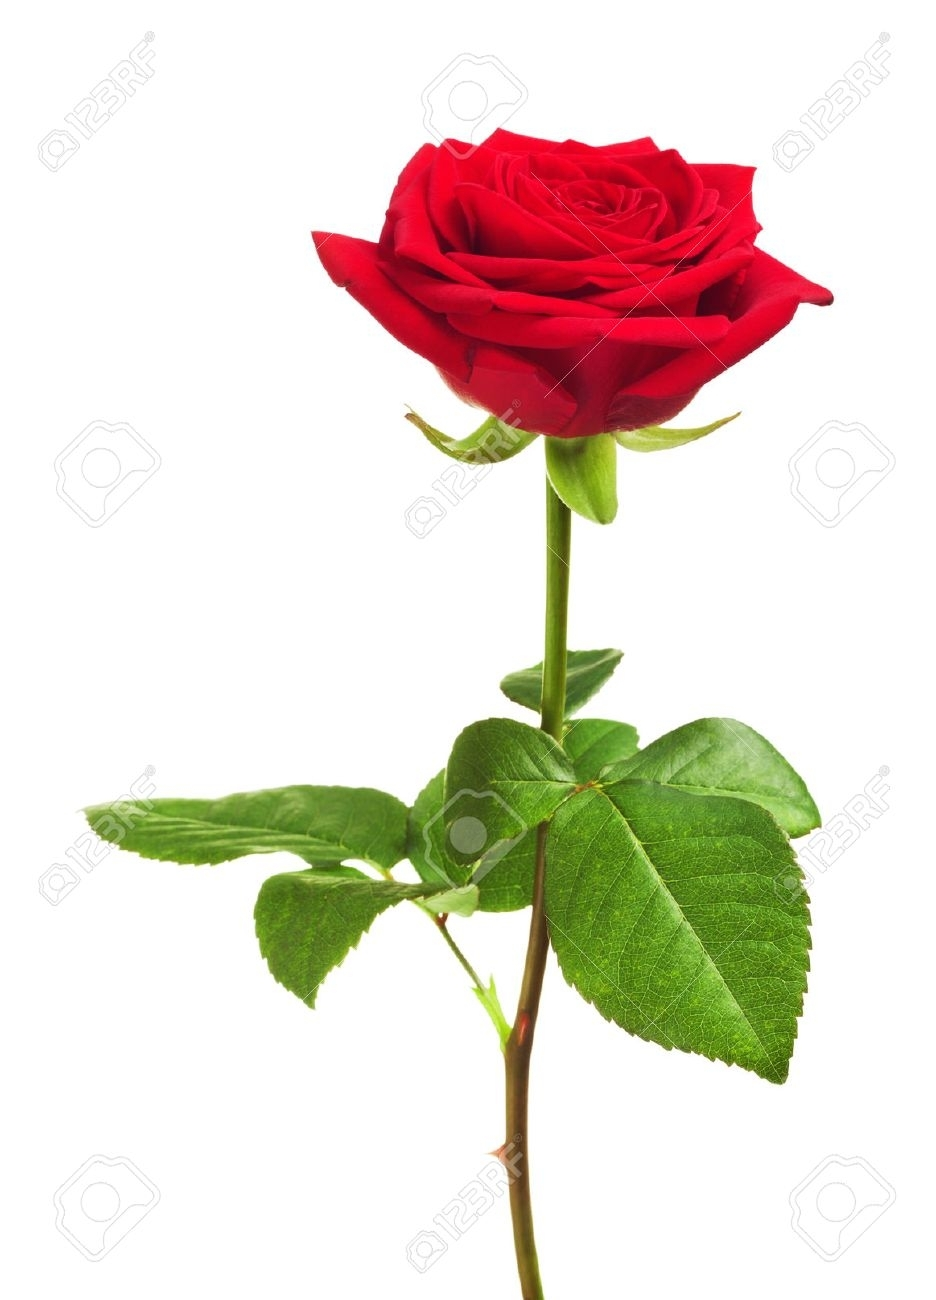 single red rose stock photos. royalty free business images